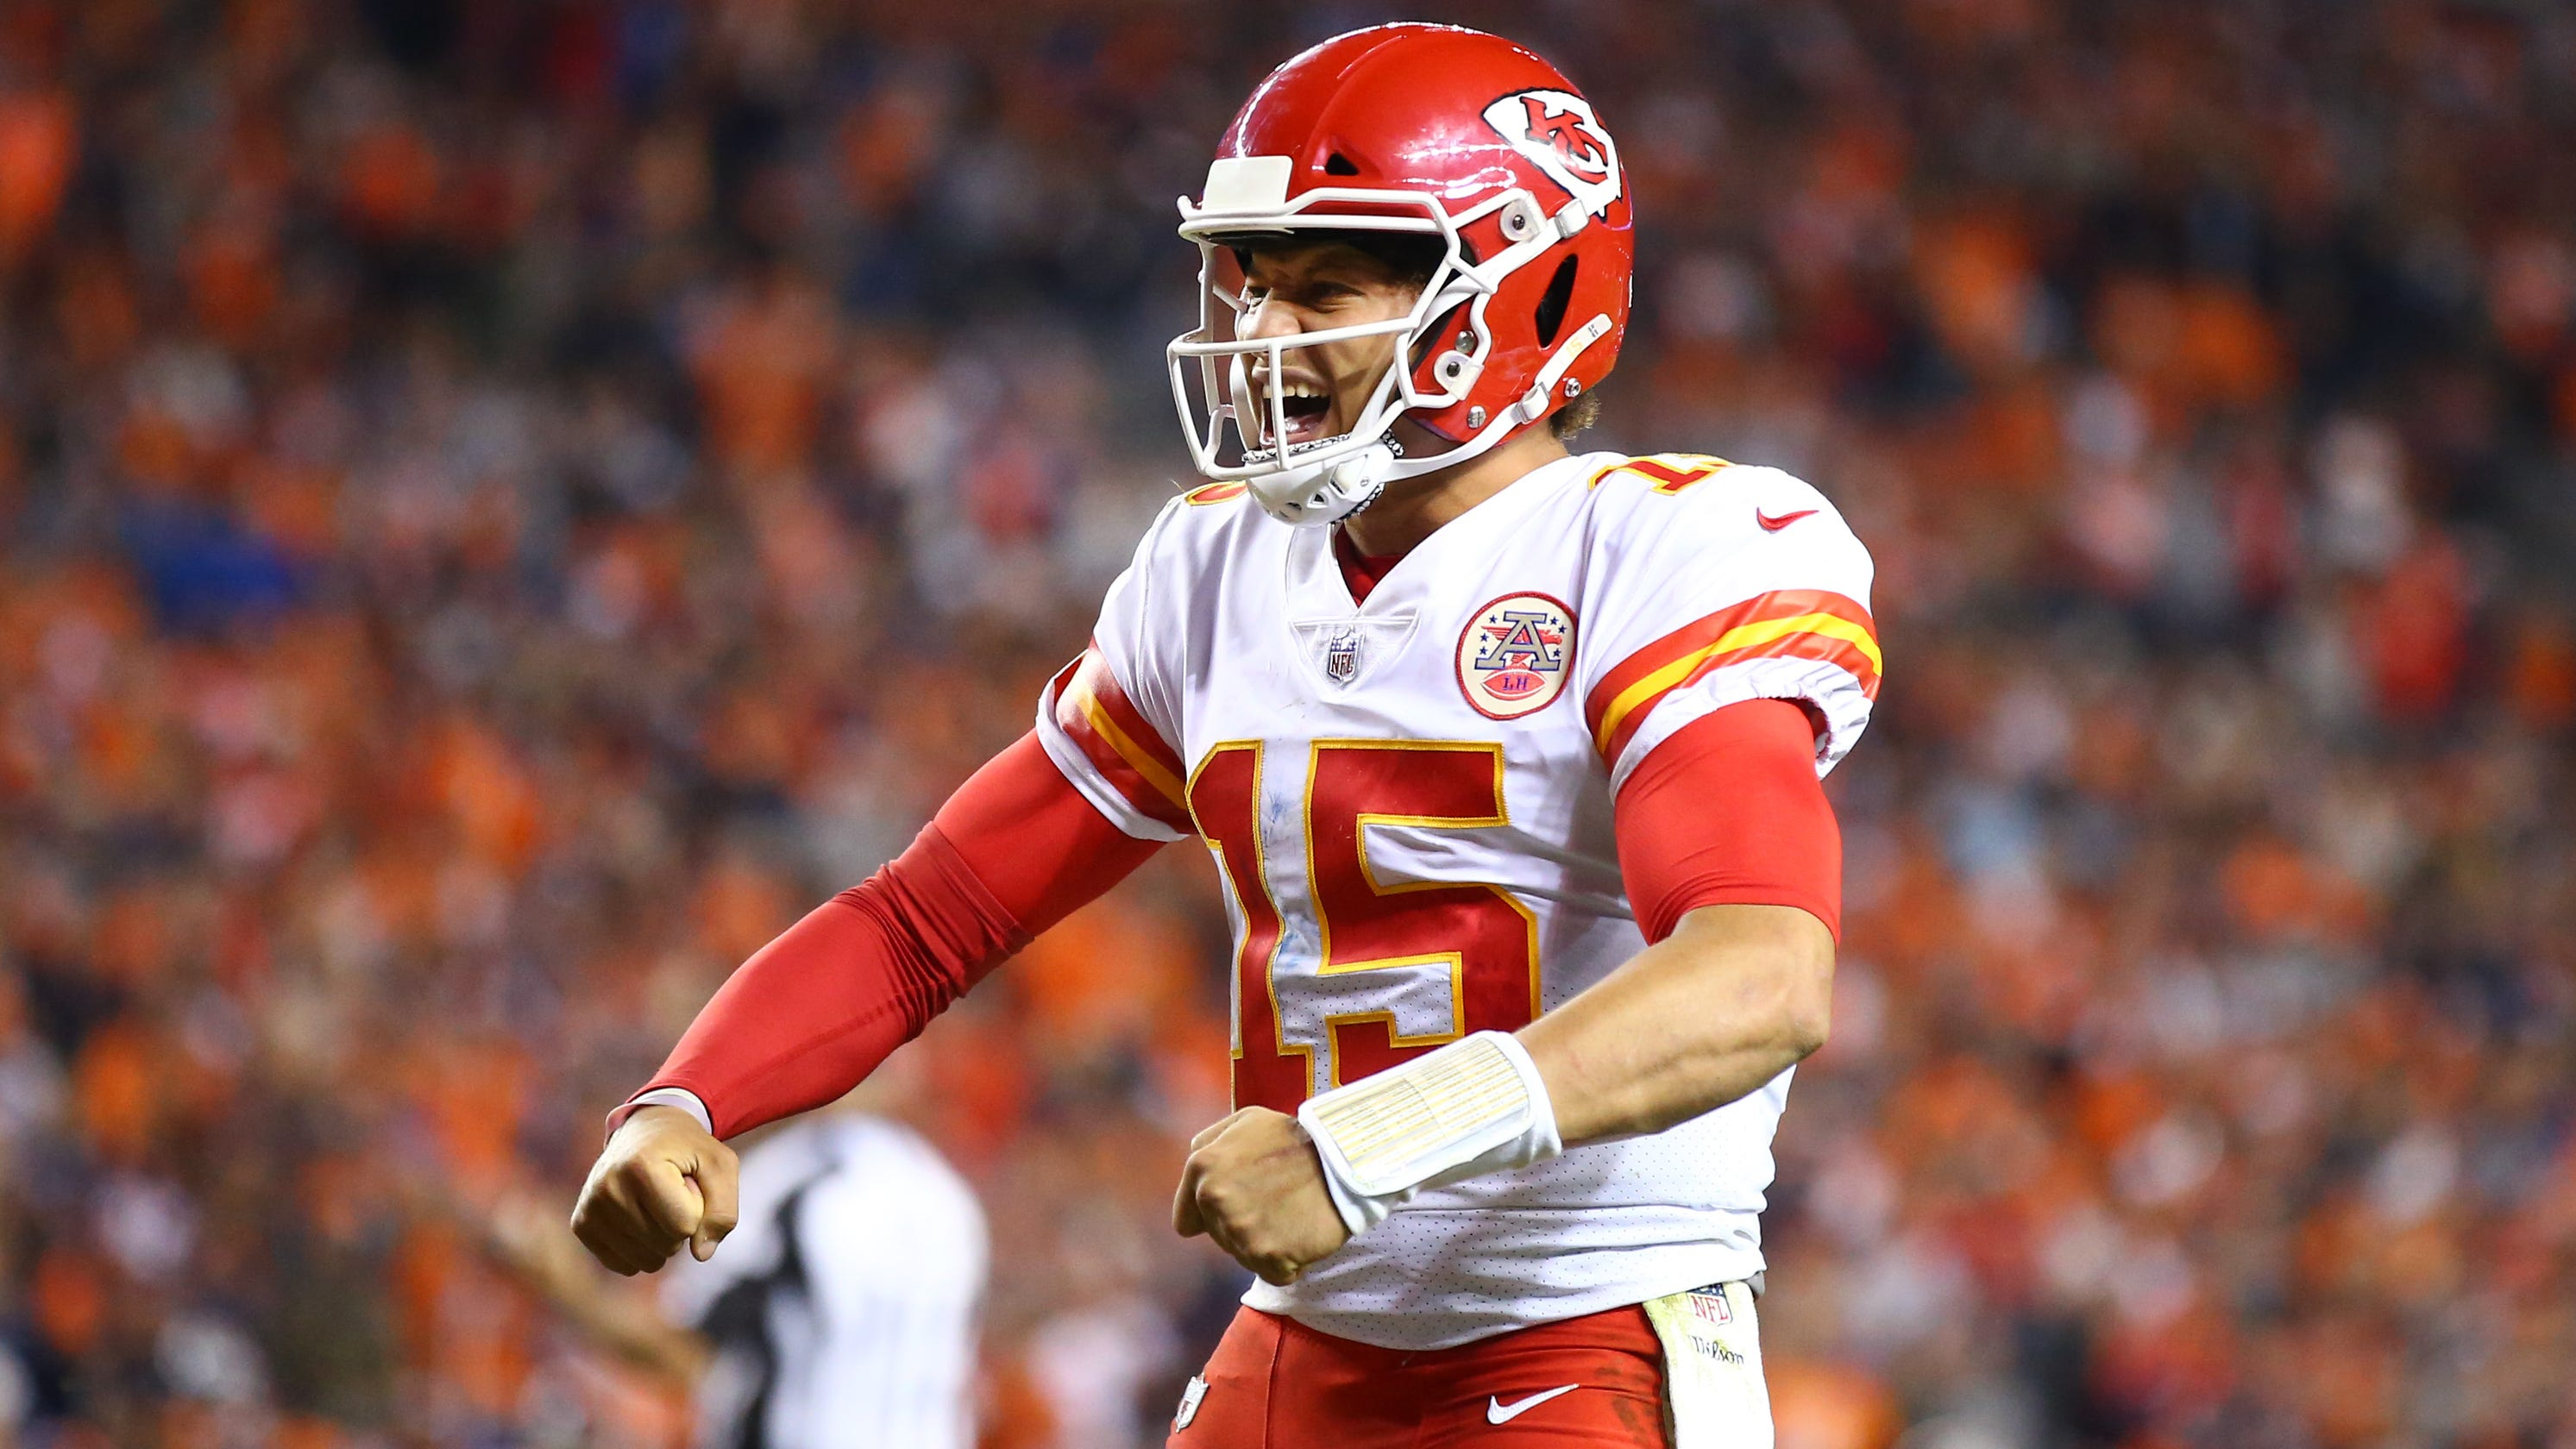 c9bc4babf Patrick Mahomes leads game-winning drive as Kansas City Chiefs survive vs. Denver  Broncos